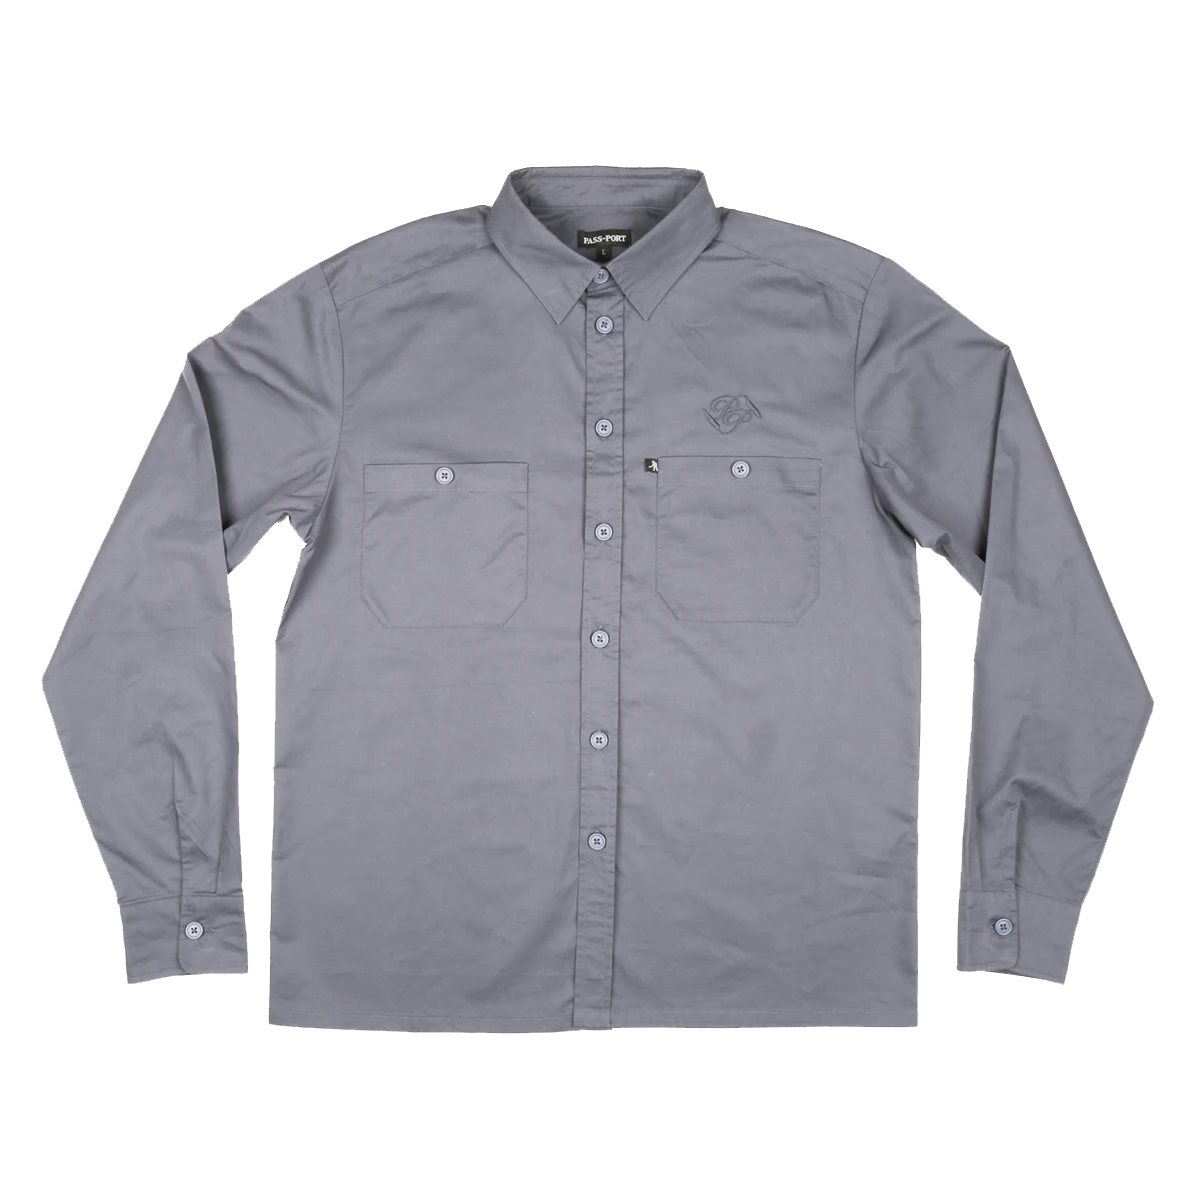 Passport Workers Long-sleeve Shirt - Grey